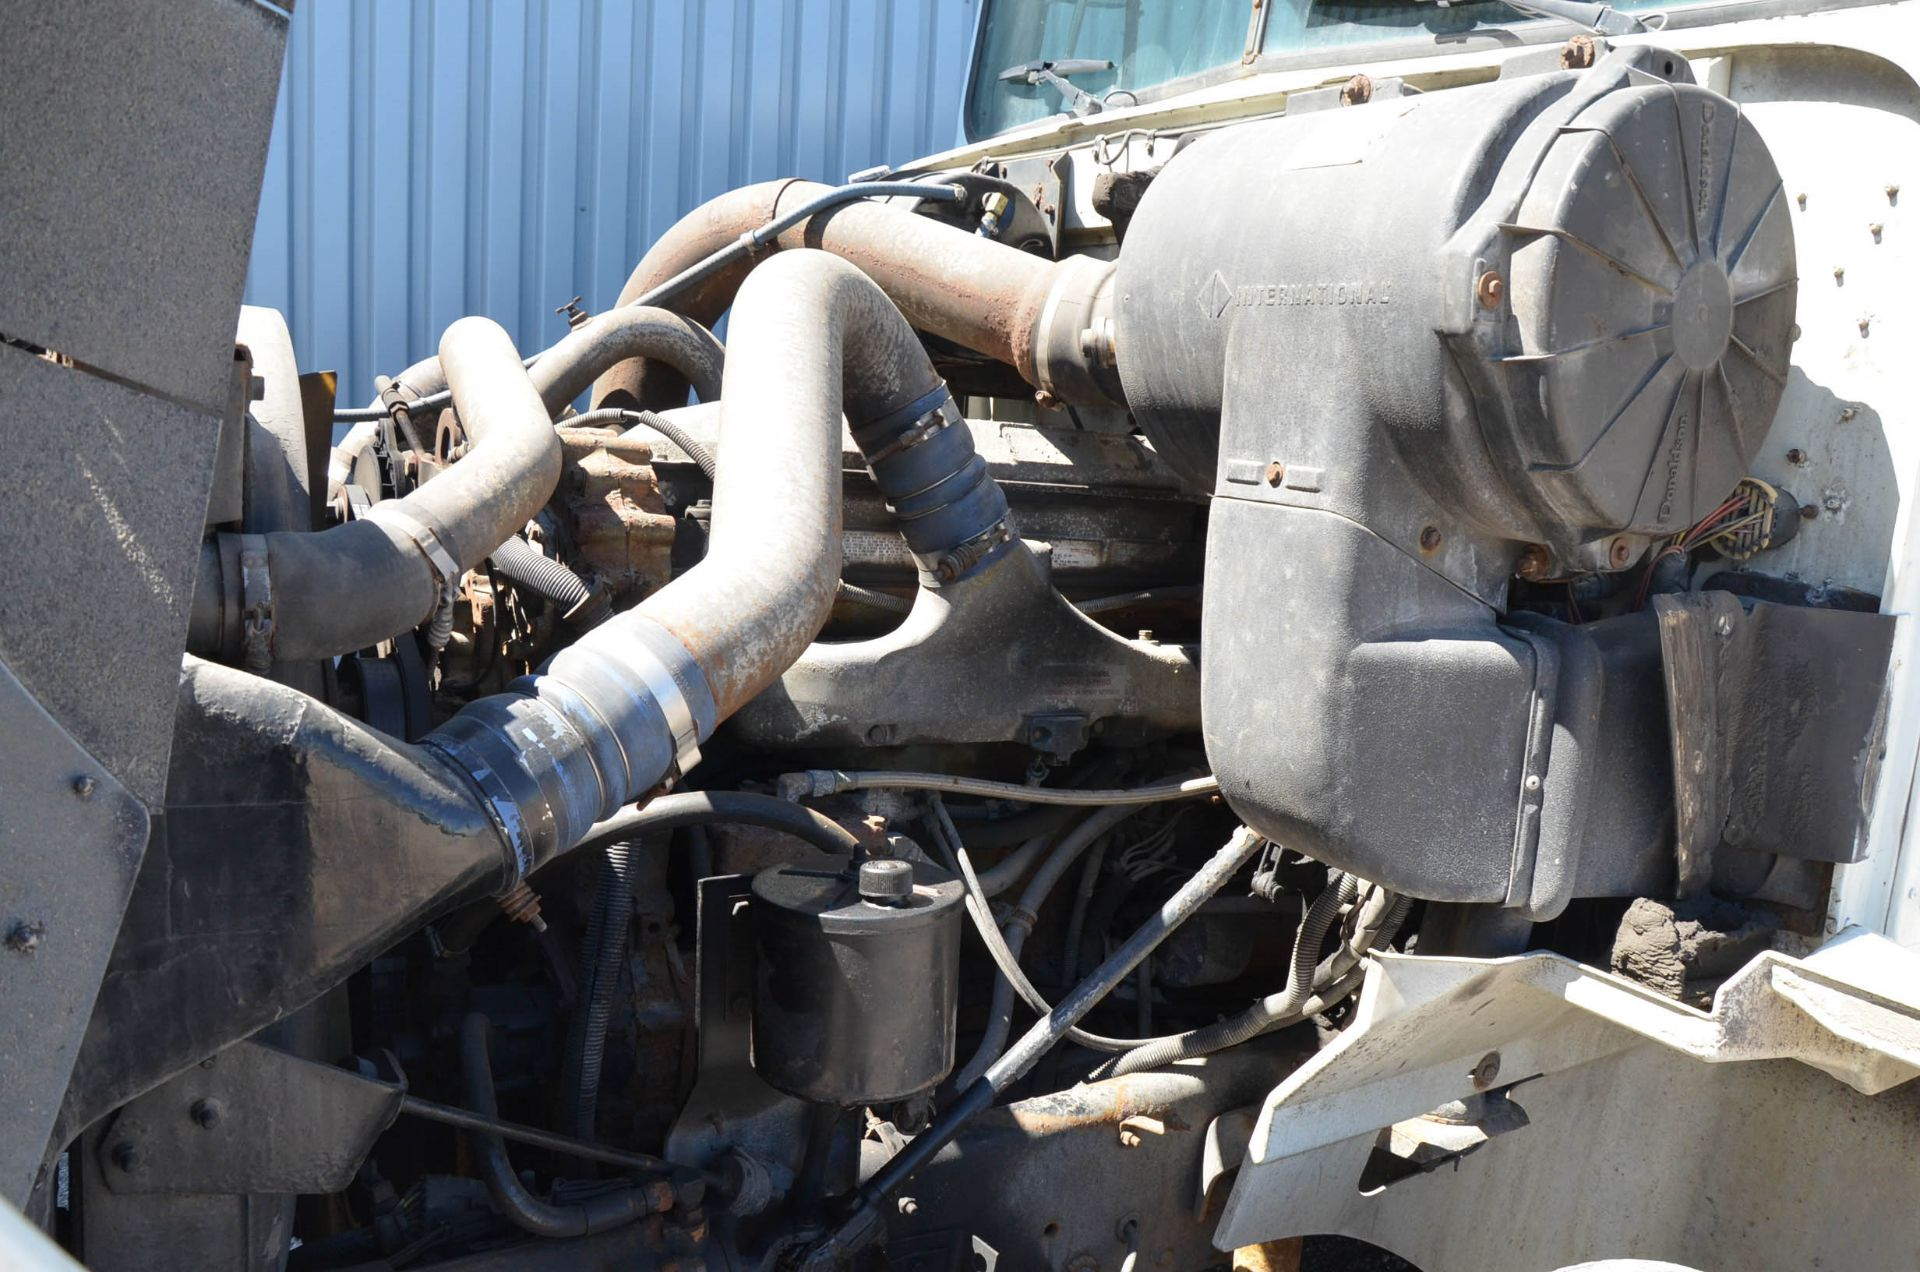 INTERNATIONAL 9200 6X4 TANDEM AXLE SEMI-TRACTOR TRUCK WITH . ENGINE, EATON-FULLER 13 SPEED MANUAL - Image 17 of 18